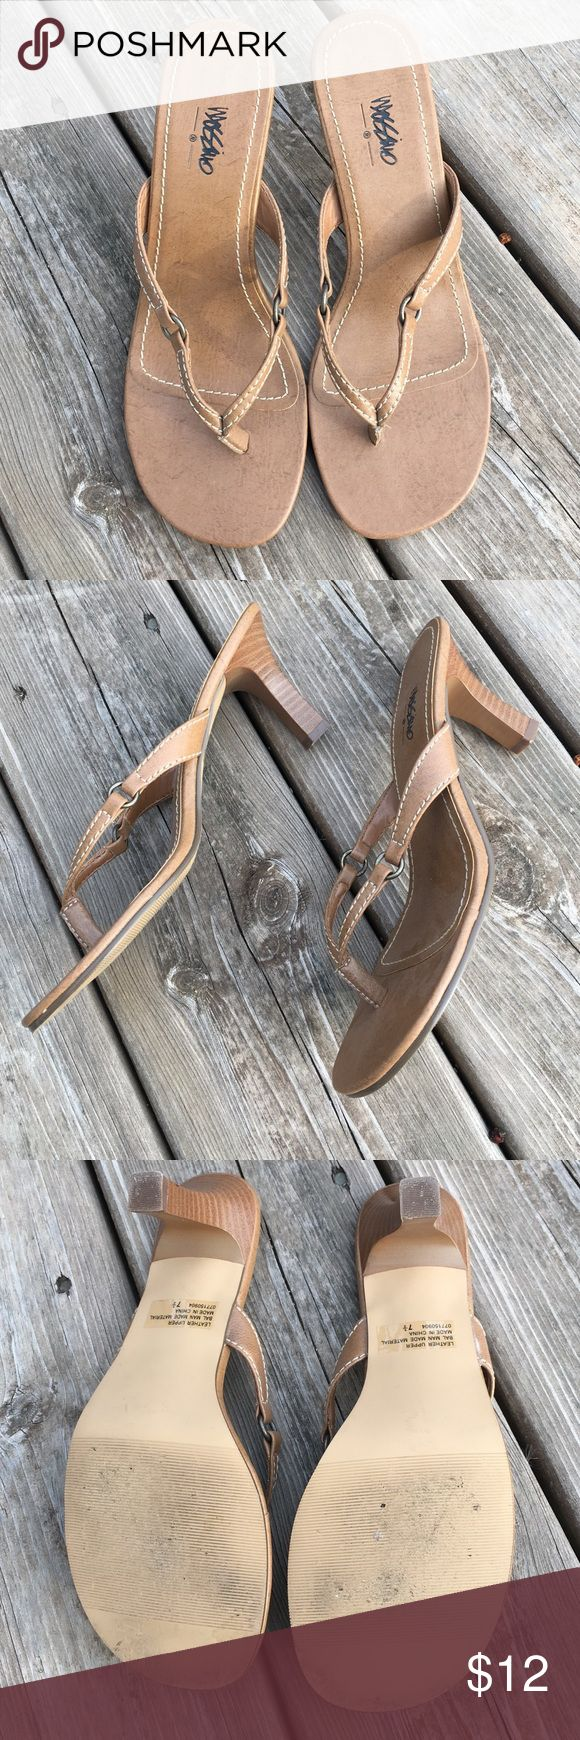 Mossimo dressy sandals GUC dressy sandals by Mossimo.  Minimal signs of wear.  No scuffs and very little dirt.  Bronze circle add a little flare to the straps.  This is a great neutral sandal. Heel measures approx 3 1/4 inches. Mossimo Supply Co Shoes Sandals